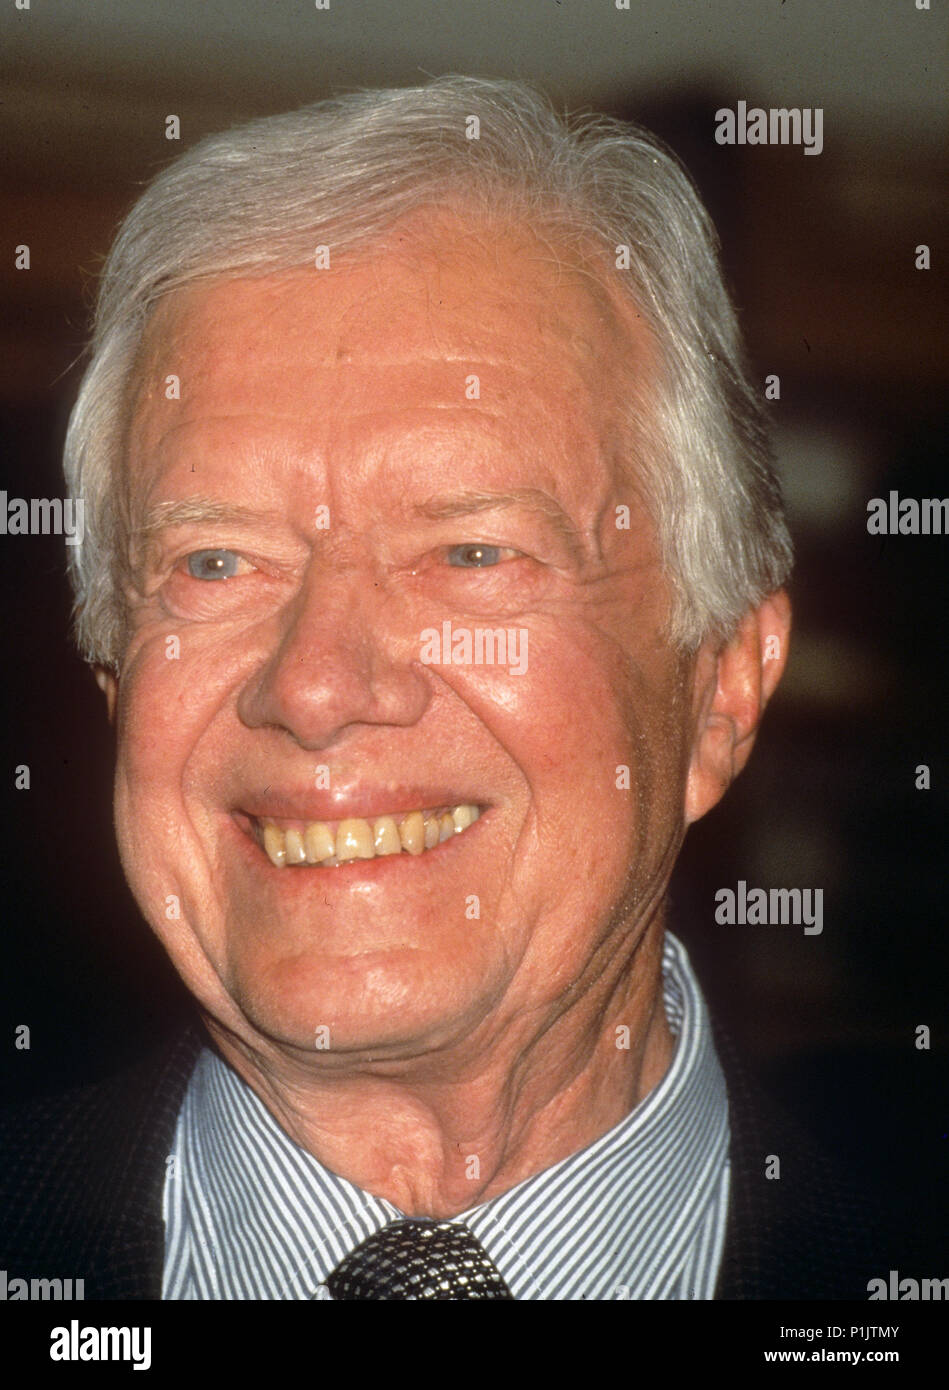 JIMMY CARTER former US President about 1995 - Stock Image